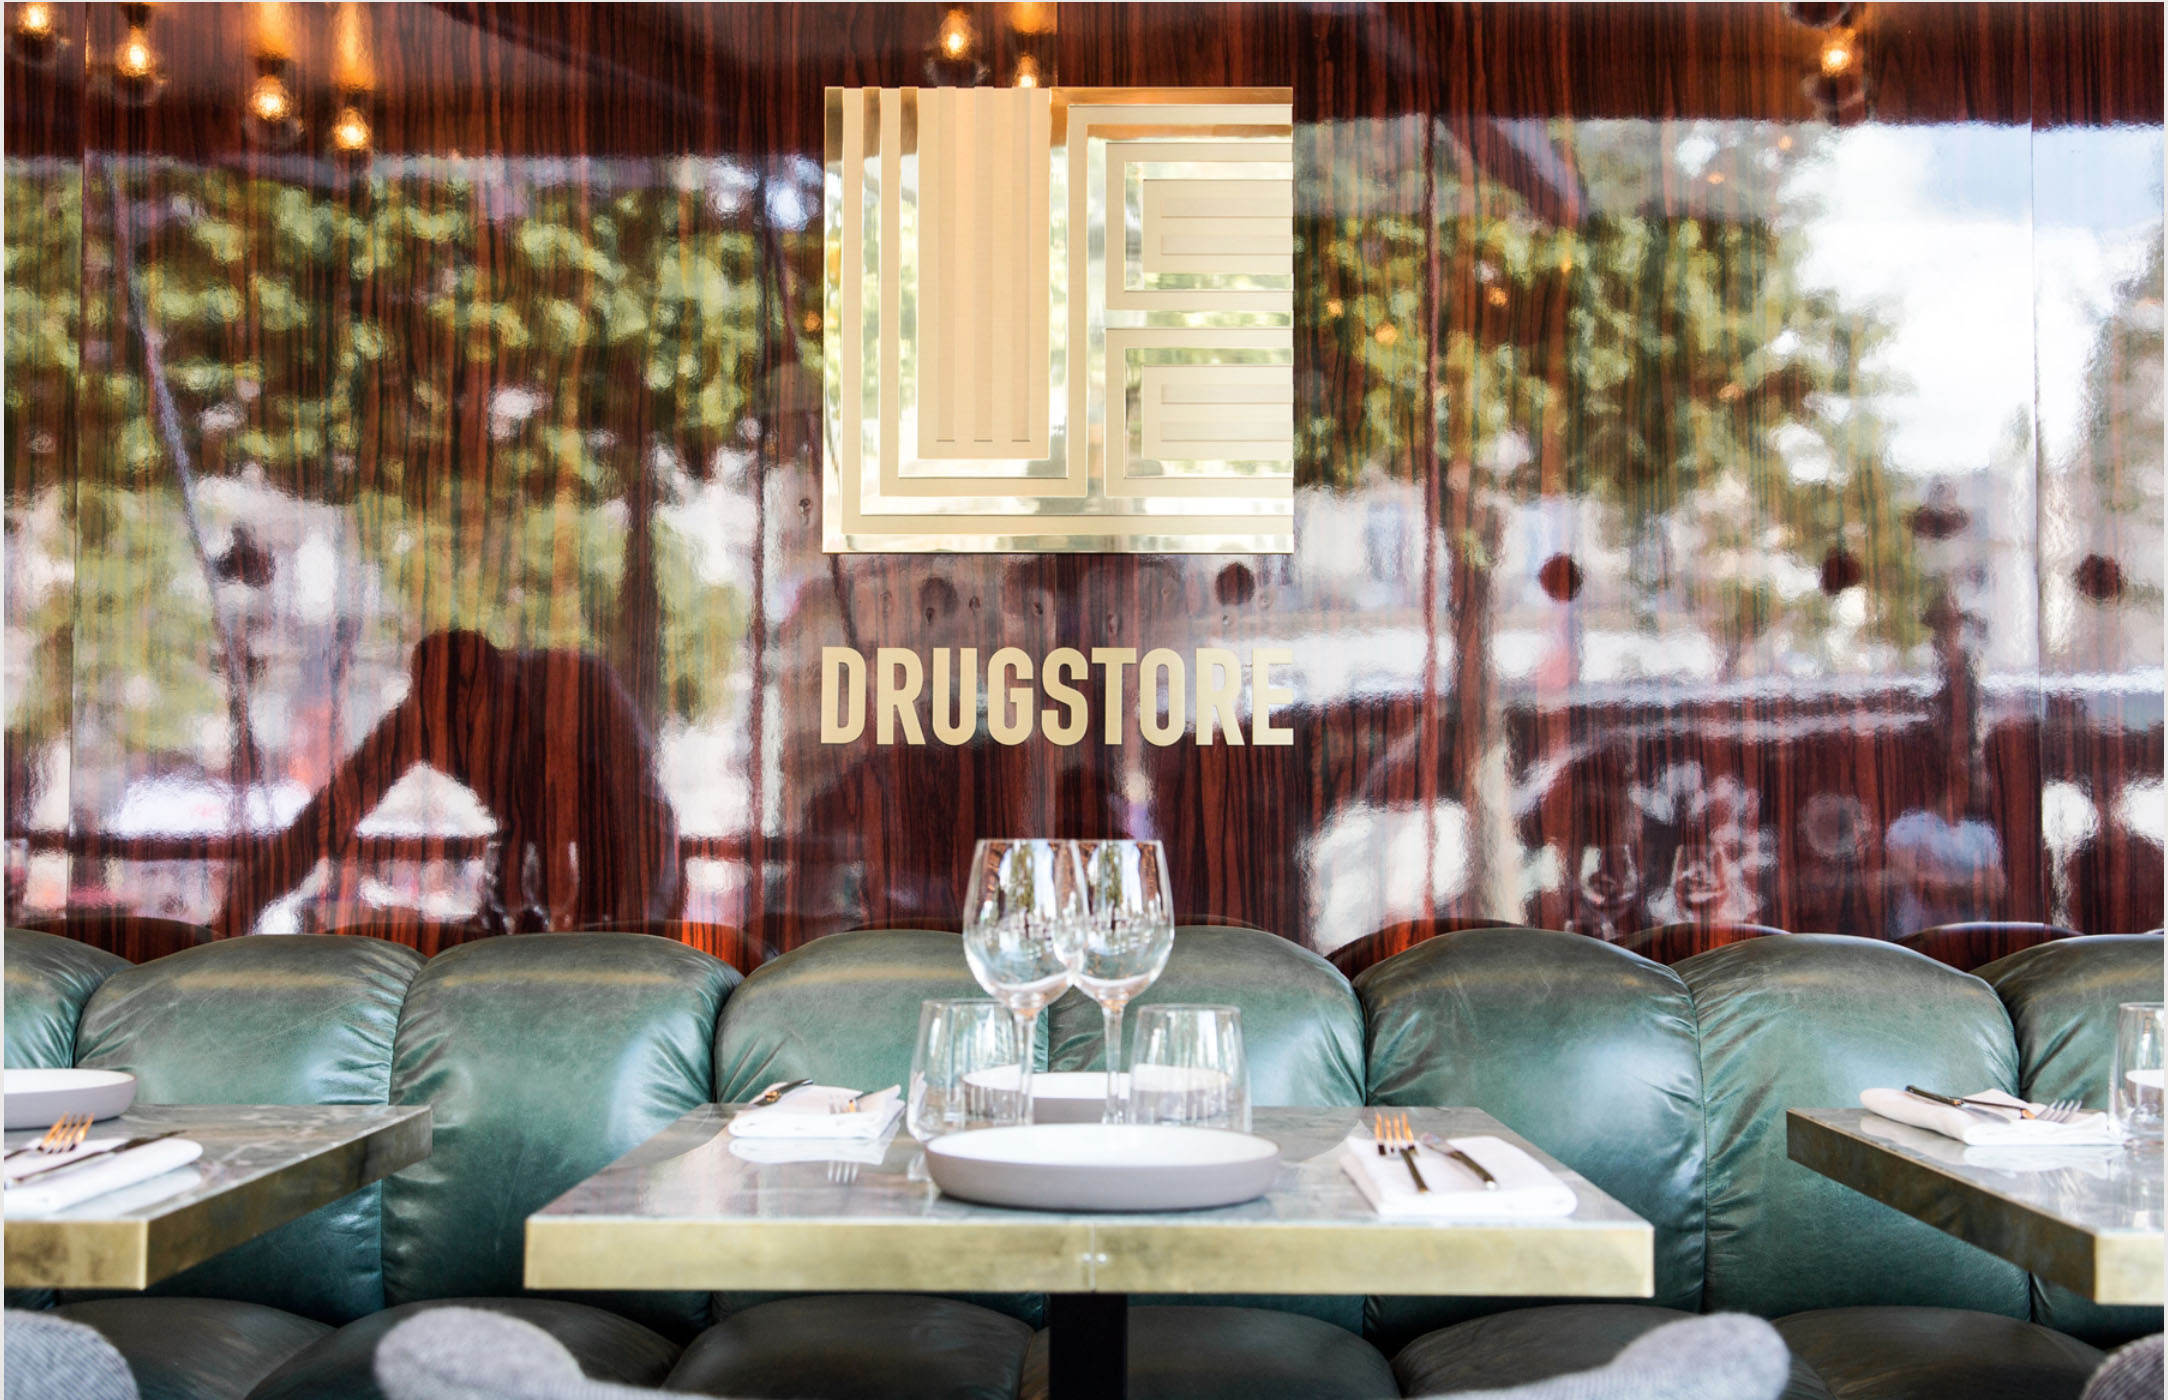 Brand Identity for Le Drugstore, Paris, by  Design&Practice